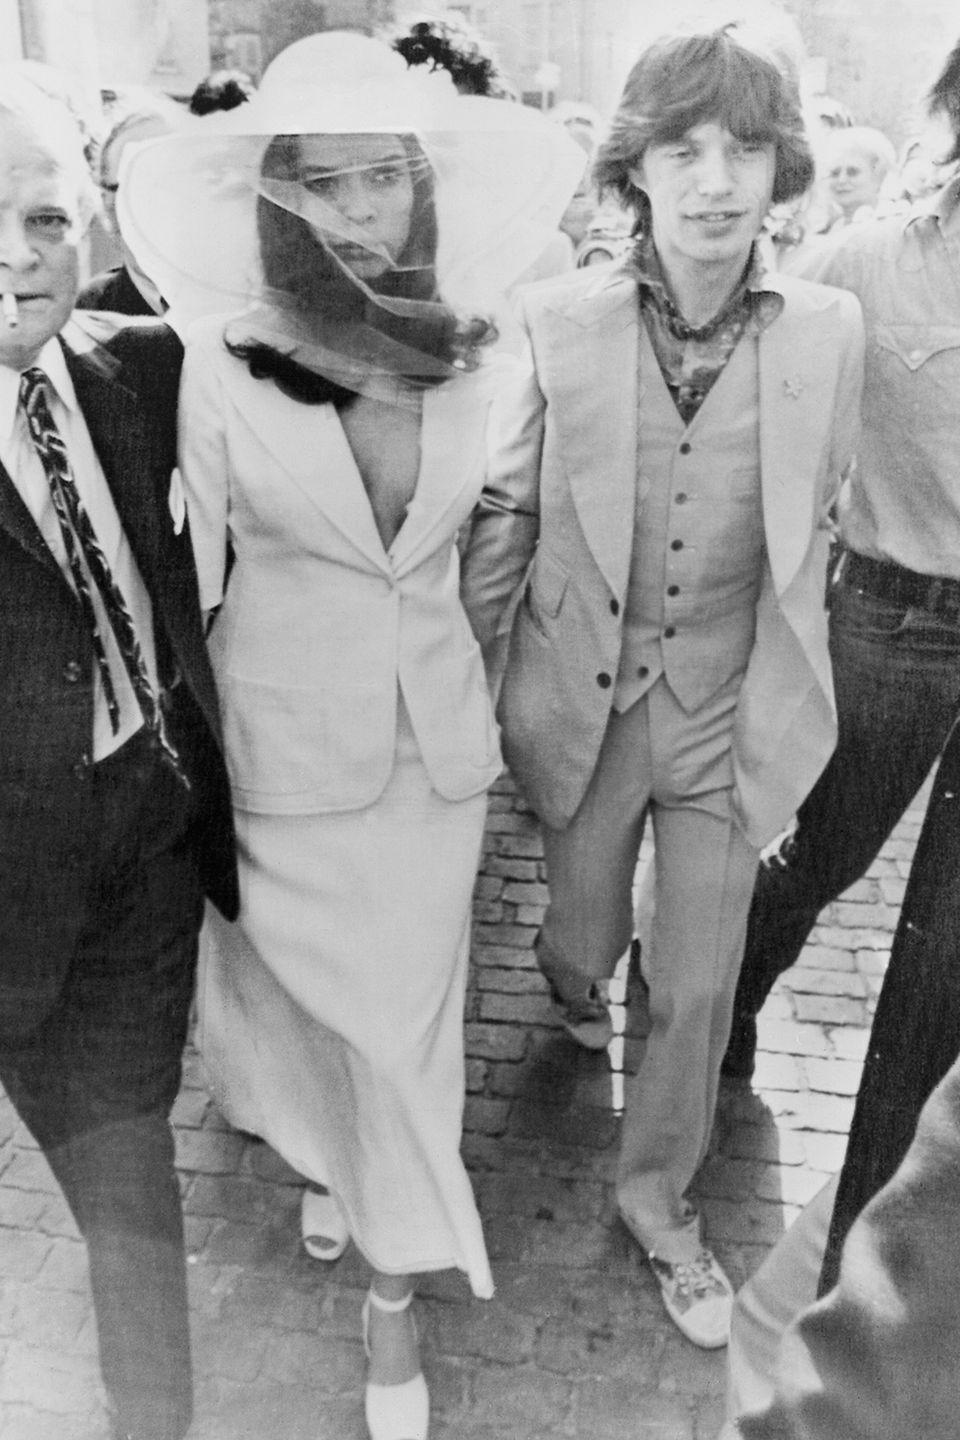 <p>The actress was truly an original when she wore a skirt suit with a plunging neckline and a veiled, wide-brim hat to marry rock star Mick Jagger. Matching ankle-strap sandals rounded out the ensemble at the small Roman Catholic ceremony in Saint-Tropez.</p>